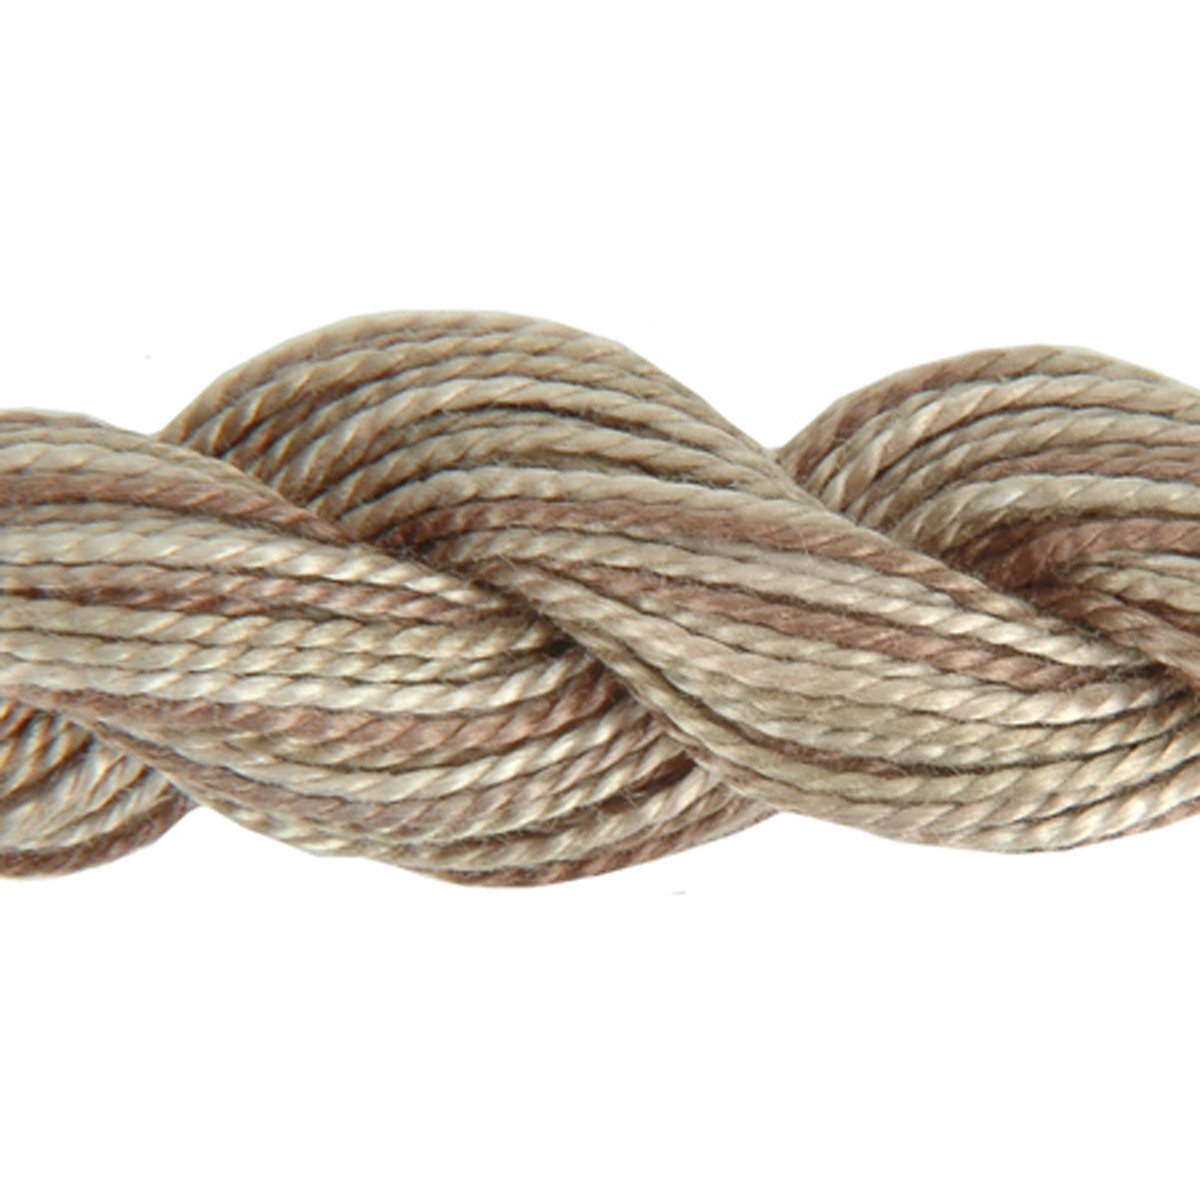 DMC 415 5-4145 Color Variations Pearl Cotton Thread, Size 5, 27-Yard, Sand Dune Notions - In Network